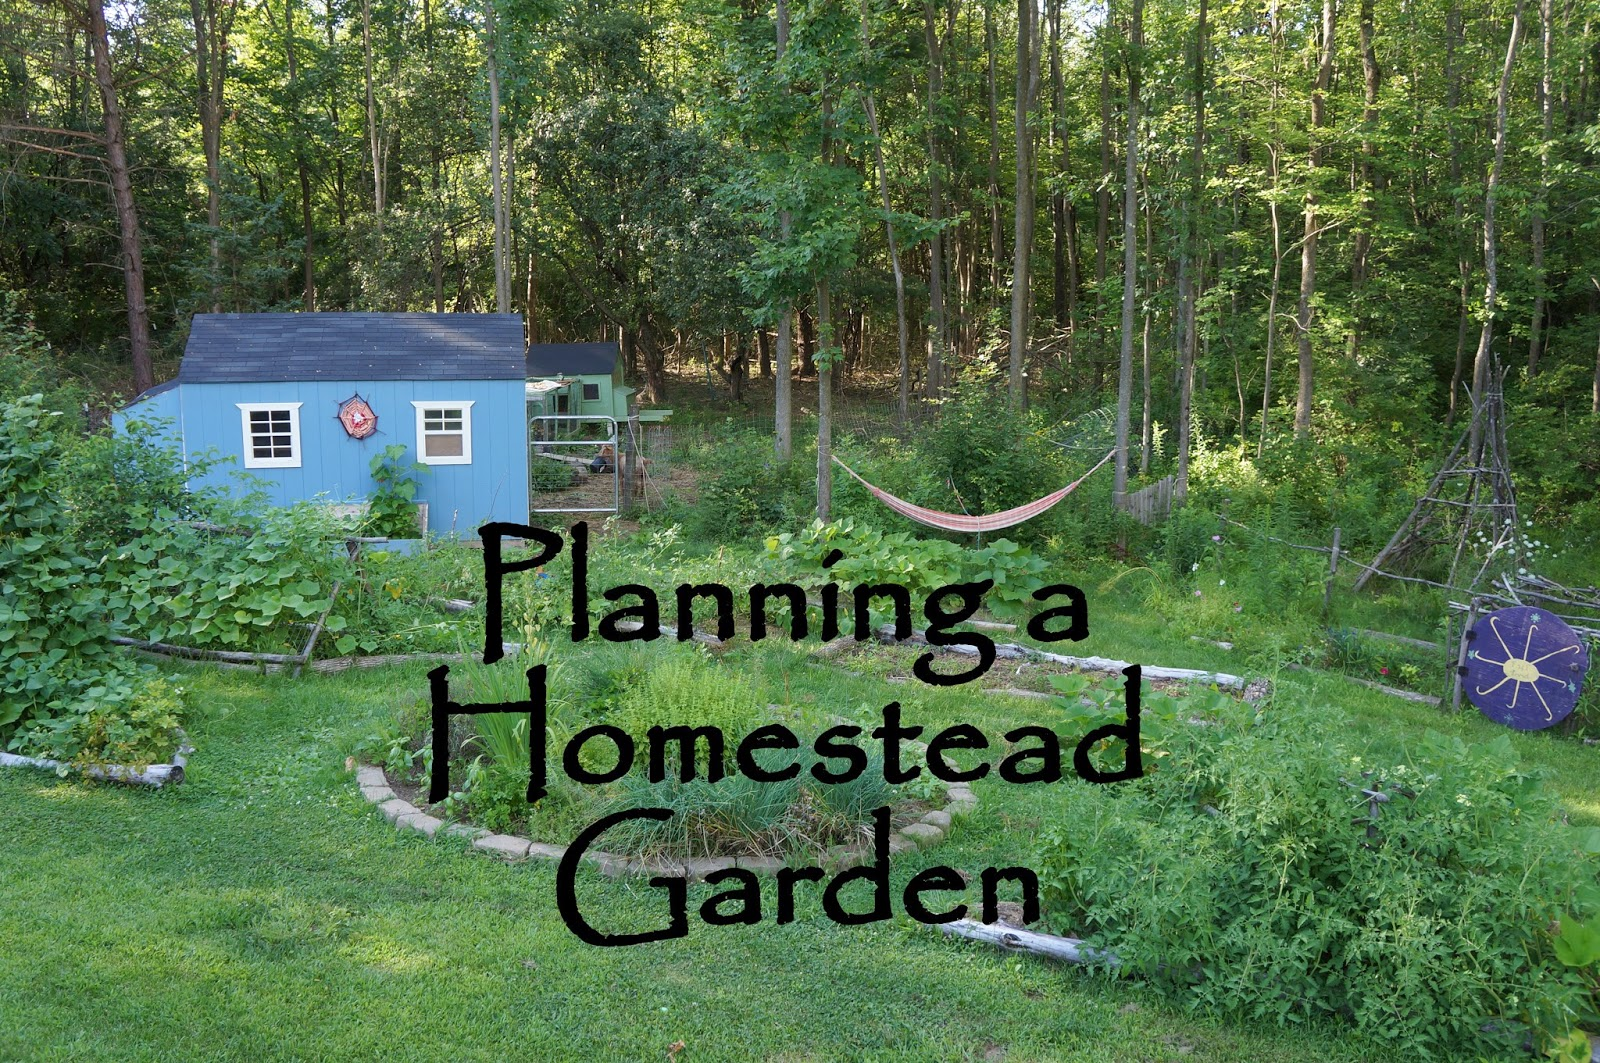 Do It Yourself Home Design: The Backyard Farming Connection: Planning Your Homestead Garden